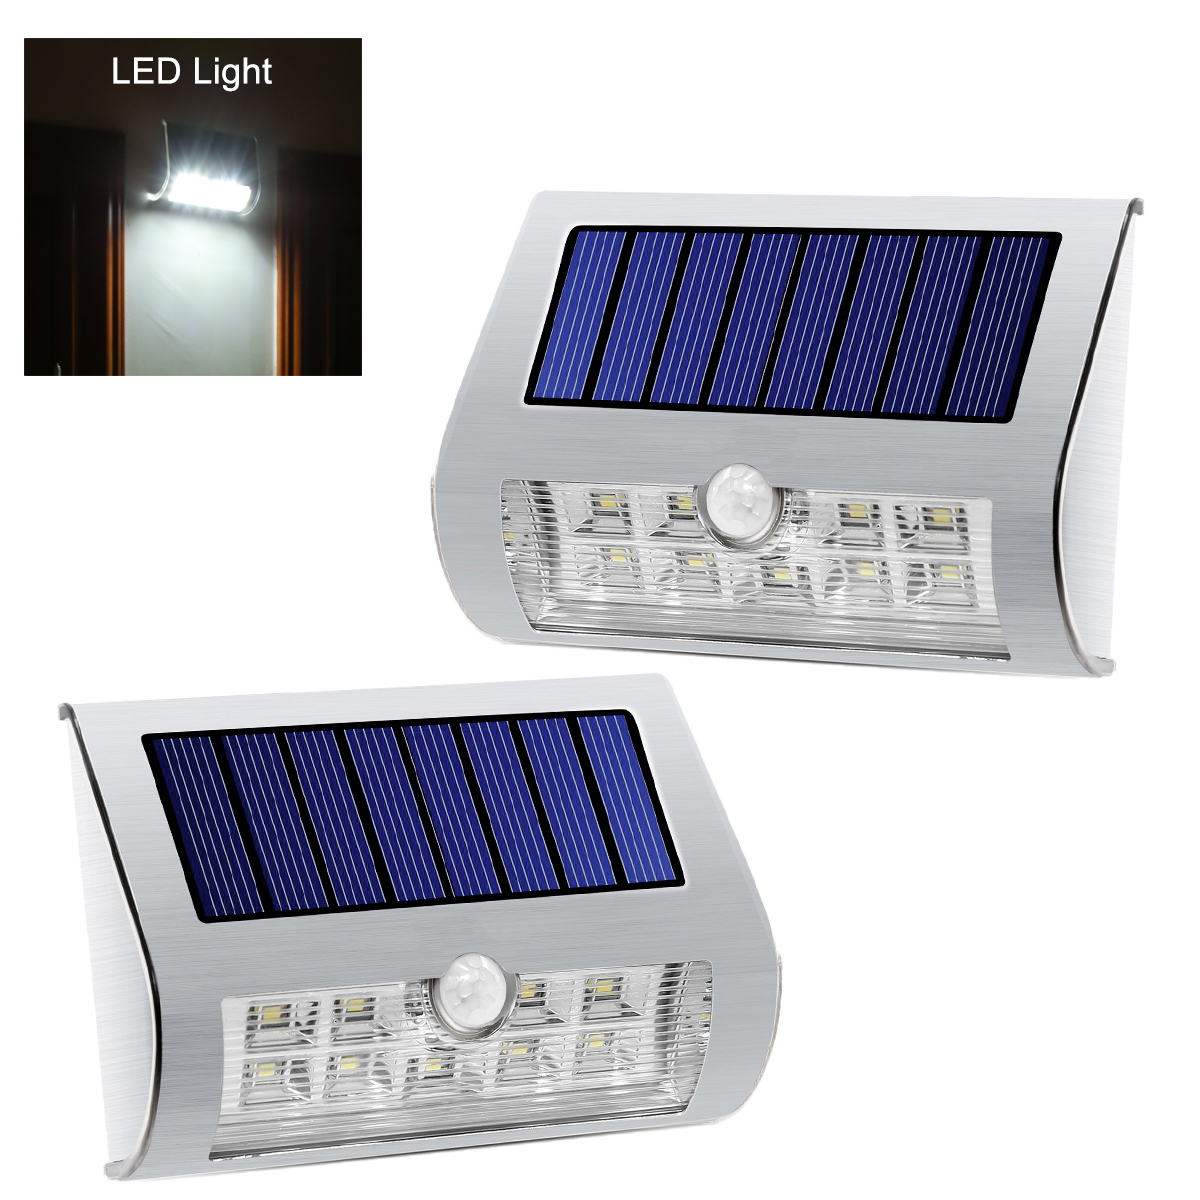 Solar Powered Outdoor LED Lights - 2 Pieces, Stainless Steel, IP44 Weatherproof, PIR Motion Detection, 80 Lumen